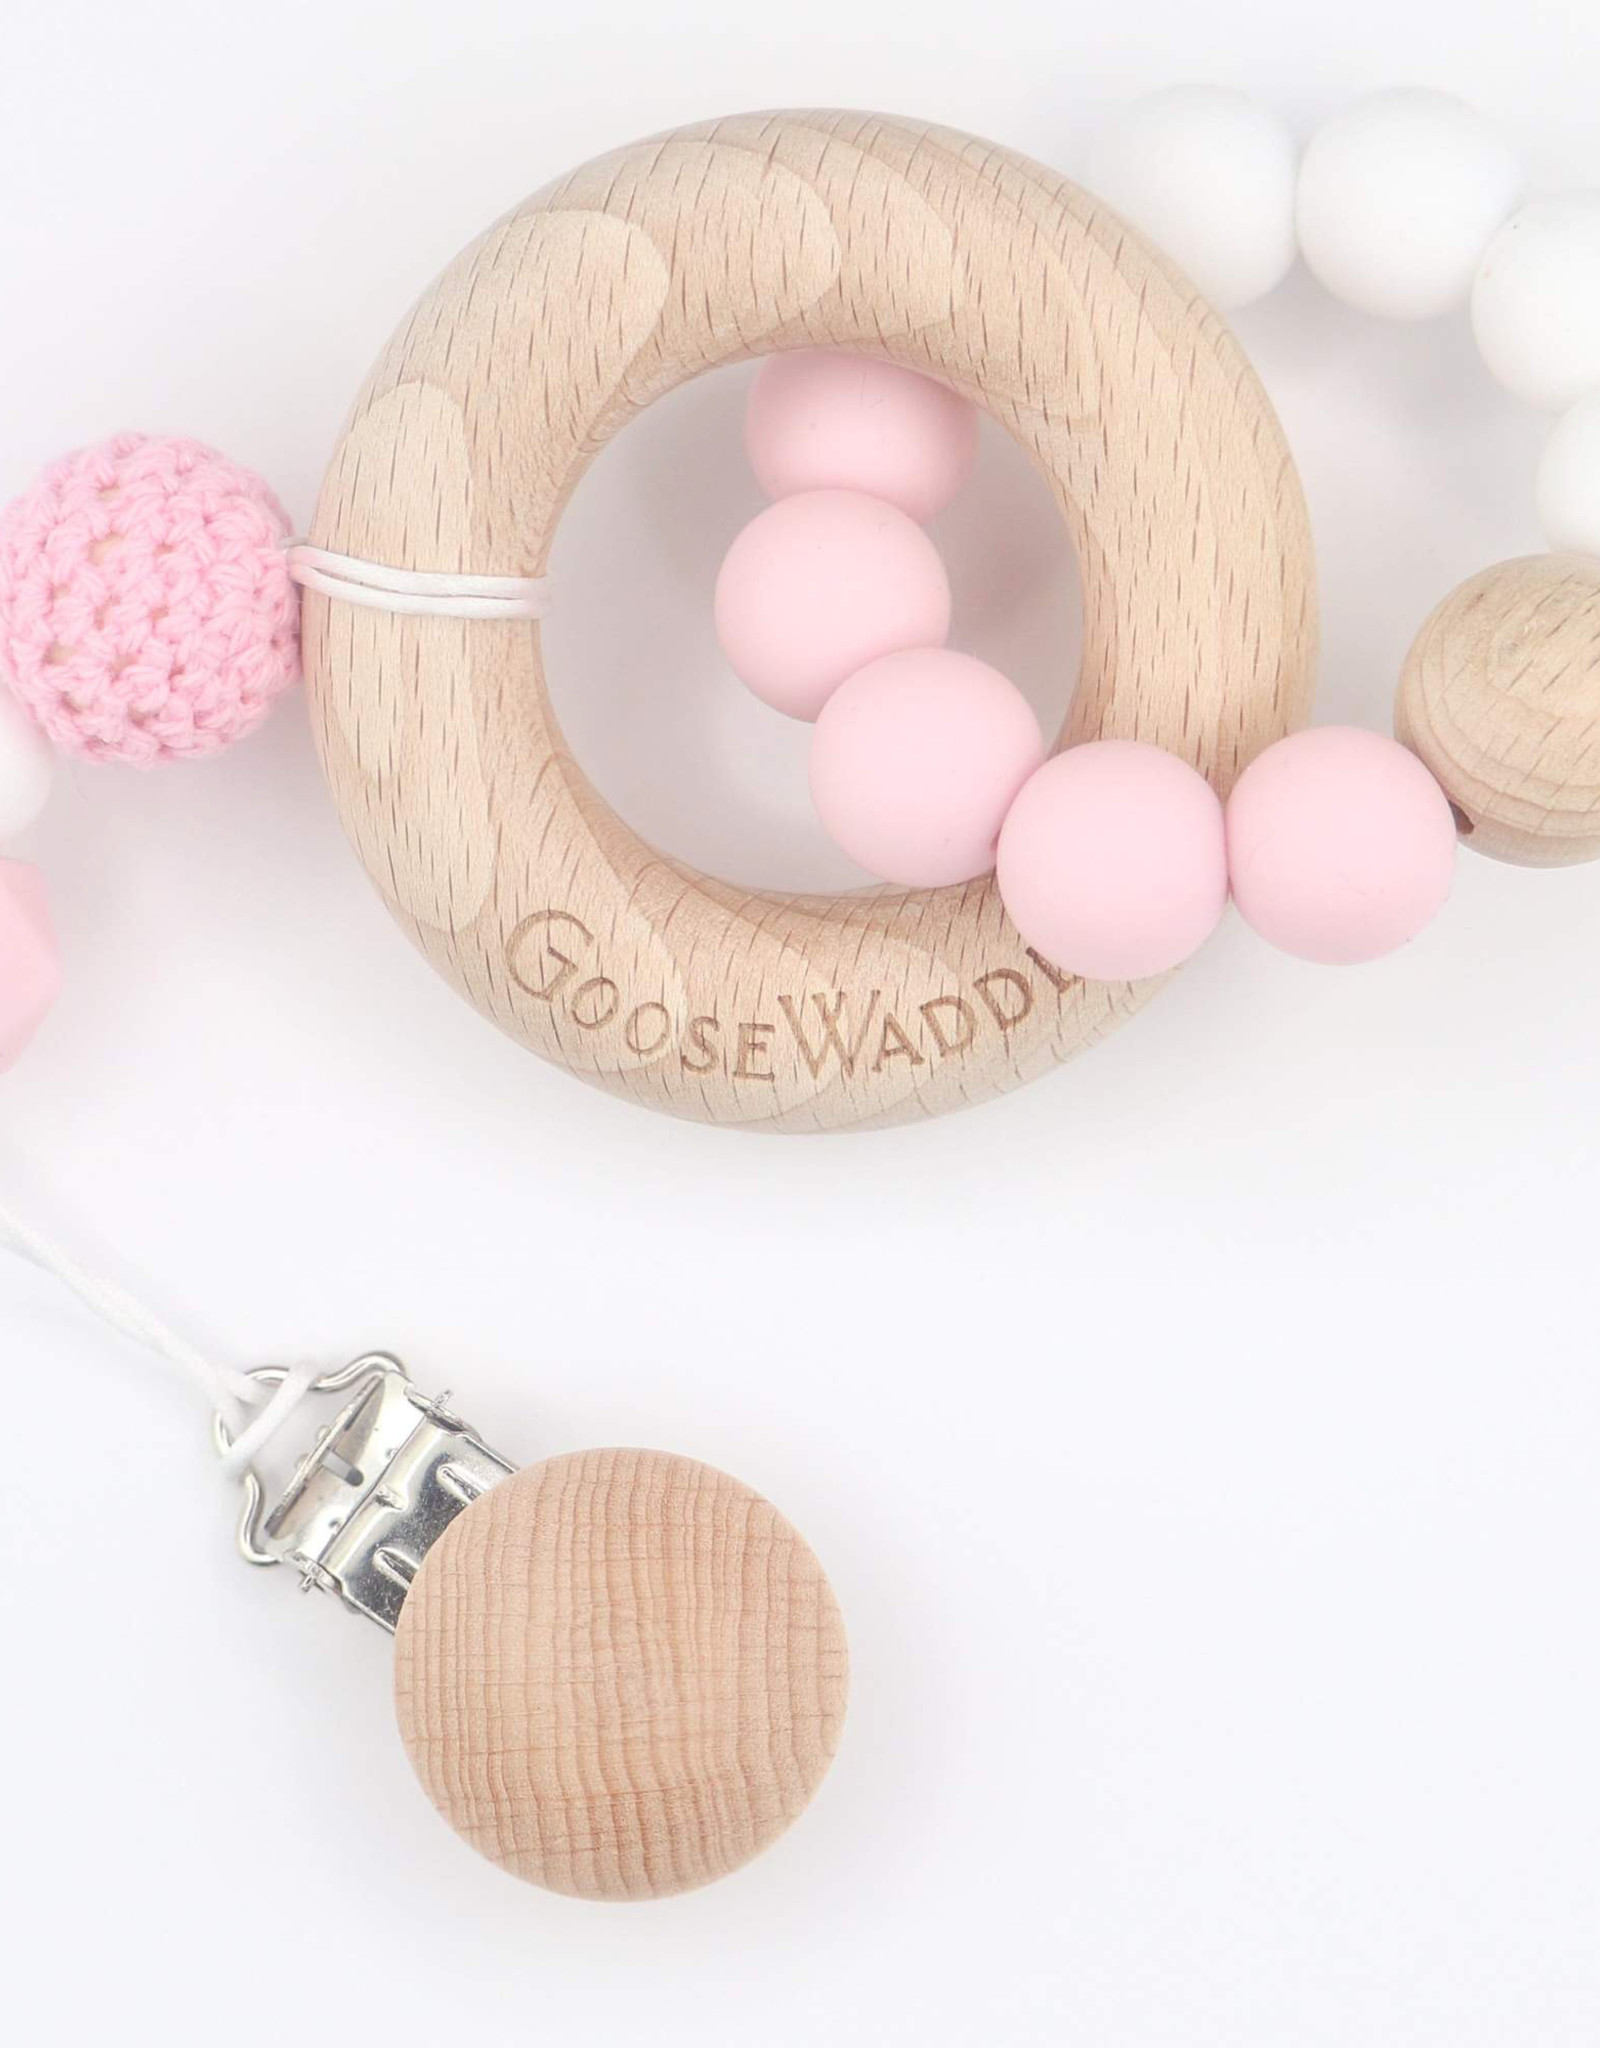 Goose Waddle Wooden Teether